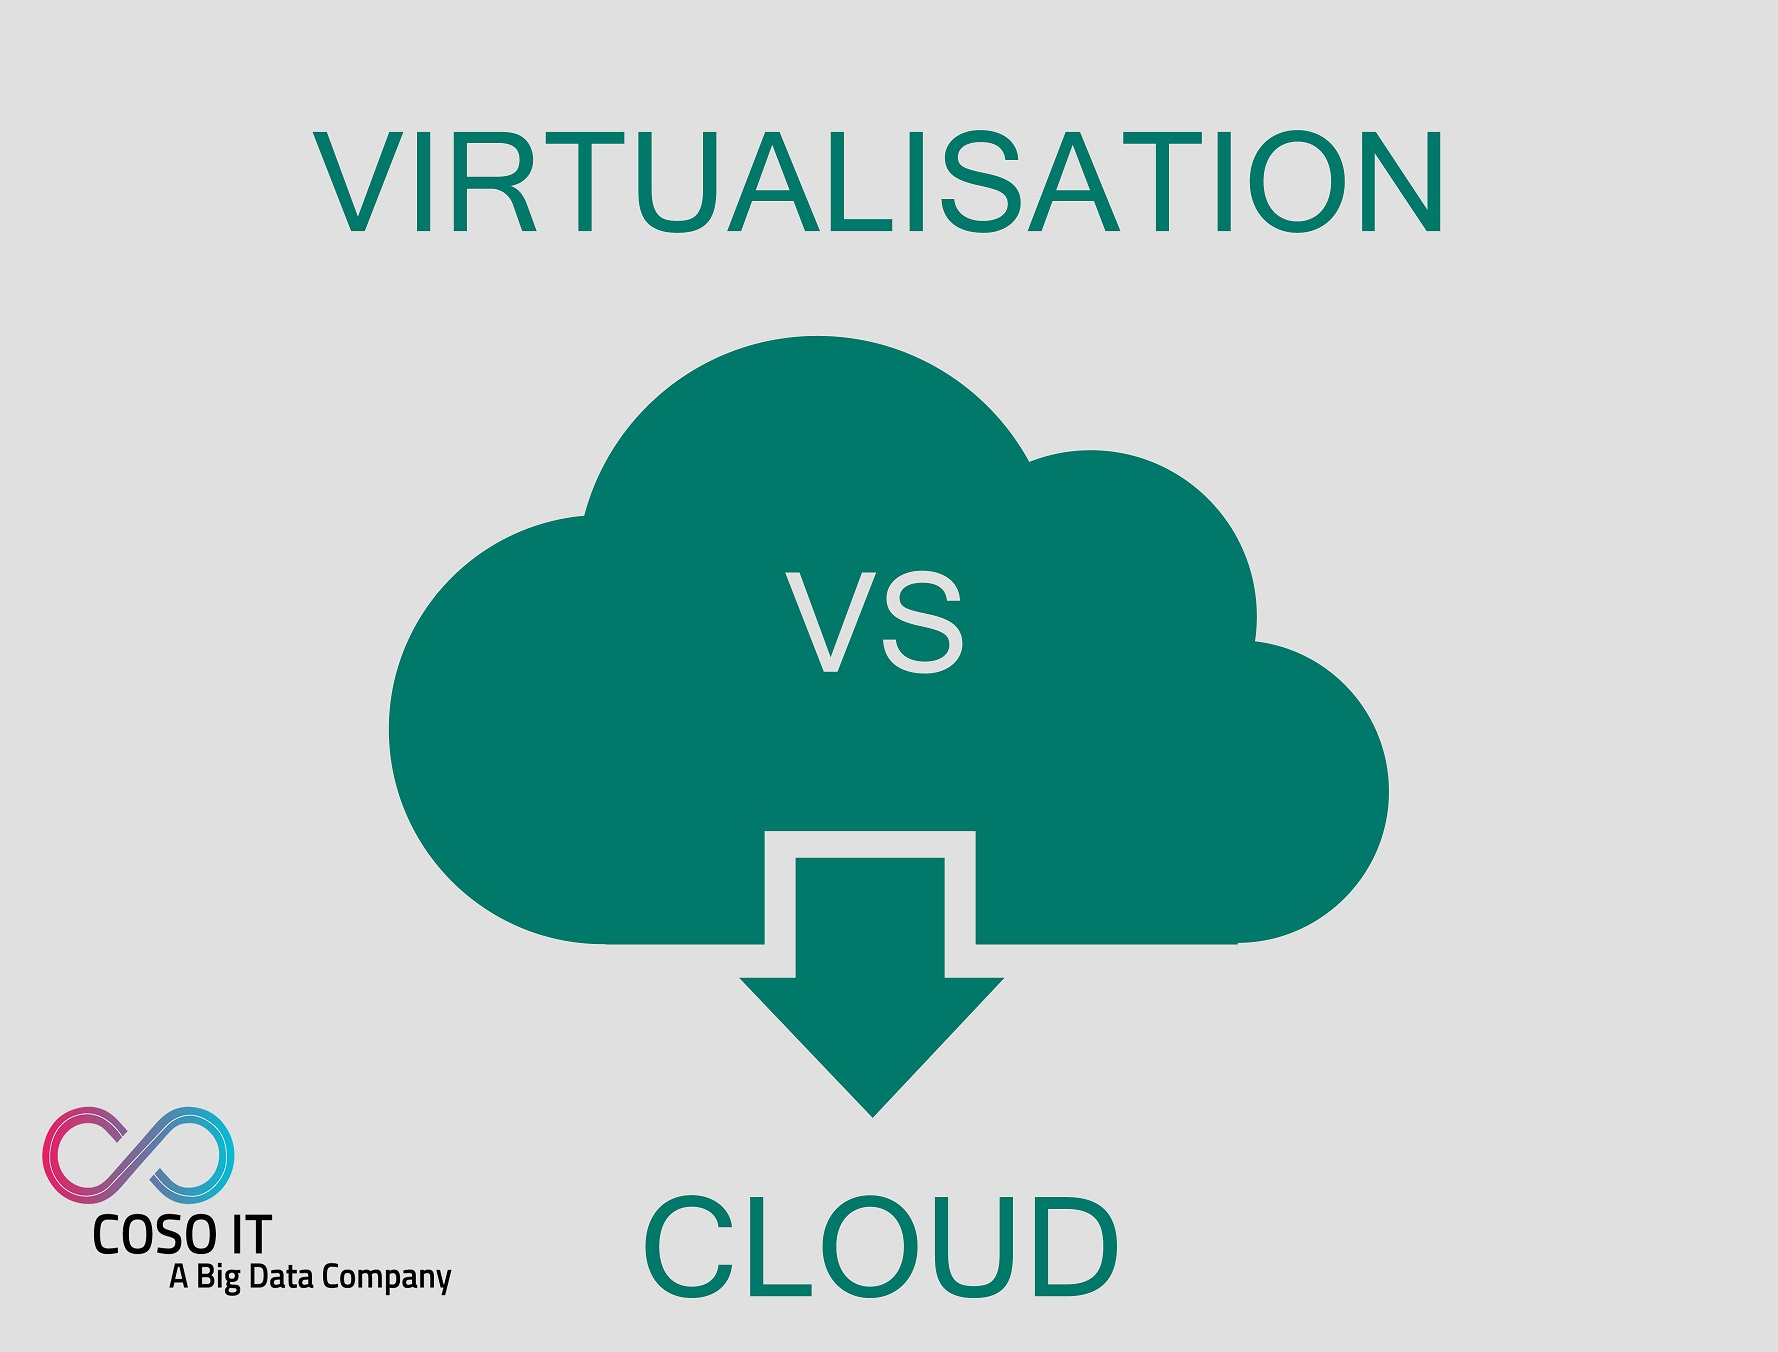 Advantages of Virtual Environment over cloud